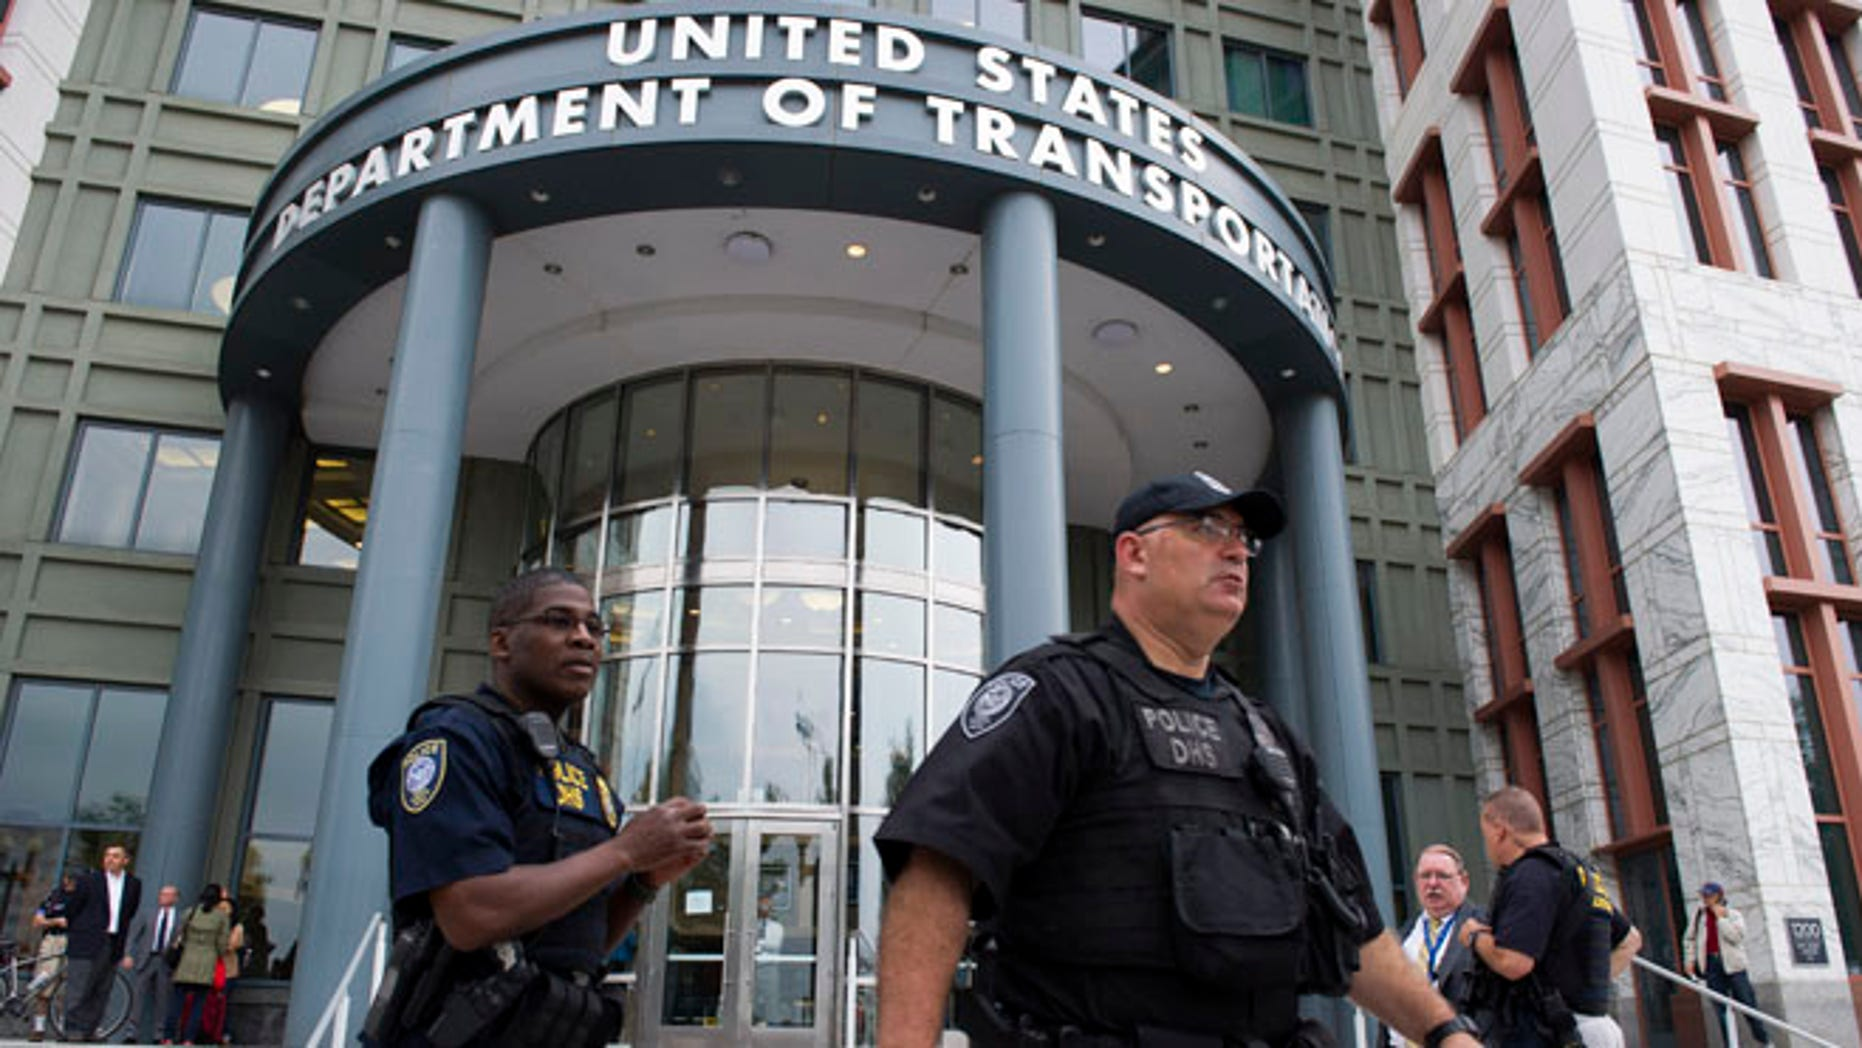 July 2, 2015: Police outside the Transportation Department, inside the  Washington Navy Yard, after reports of shots fired. Washington, D.C.